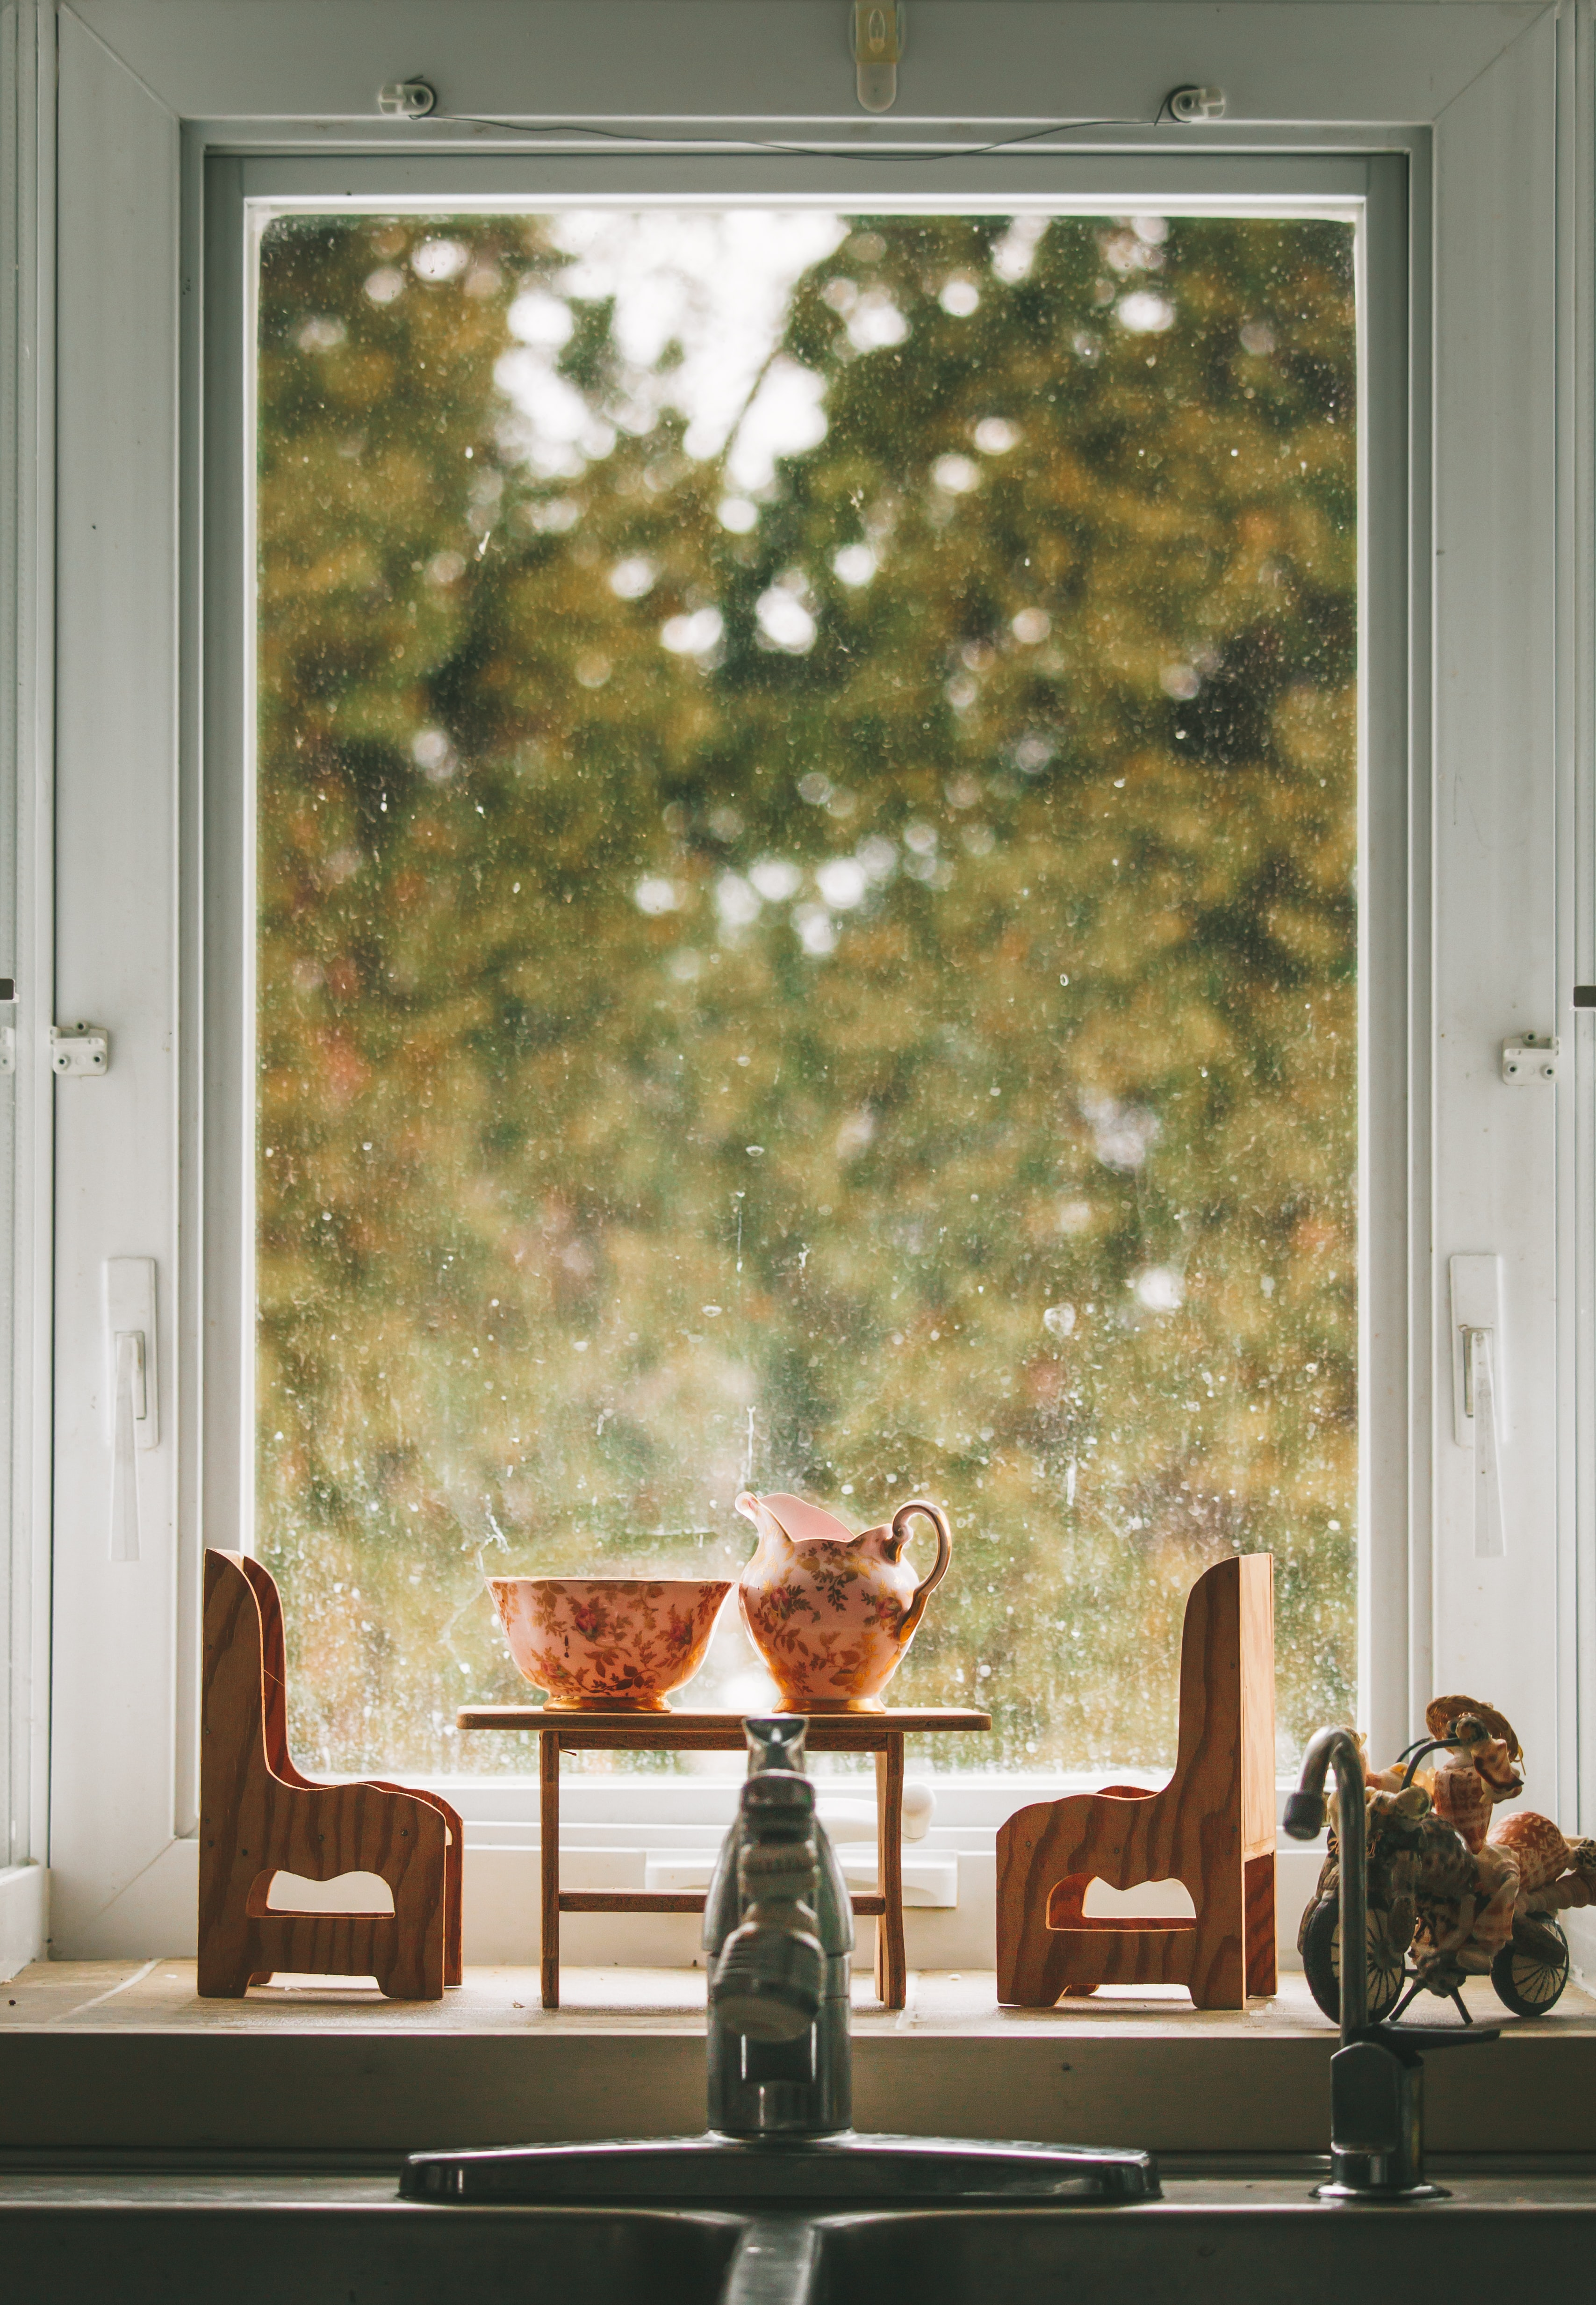 miniature chairs and table near window